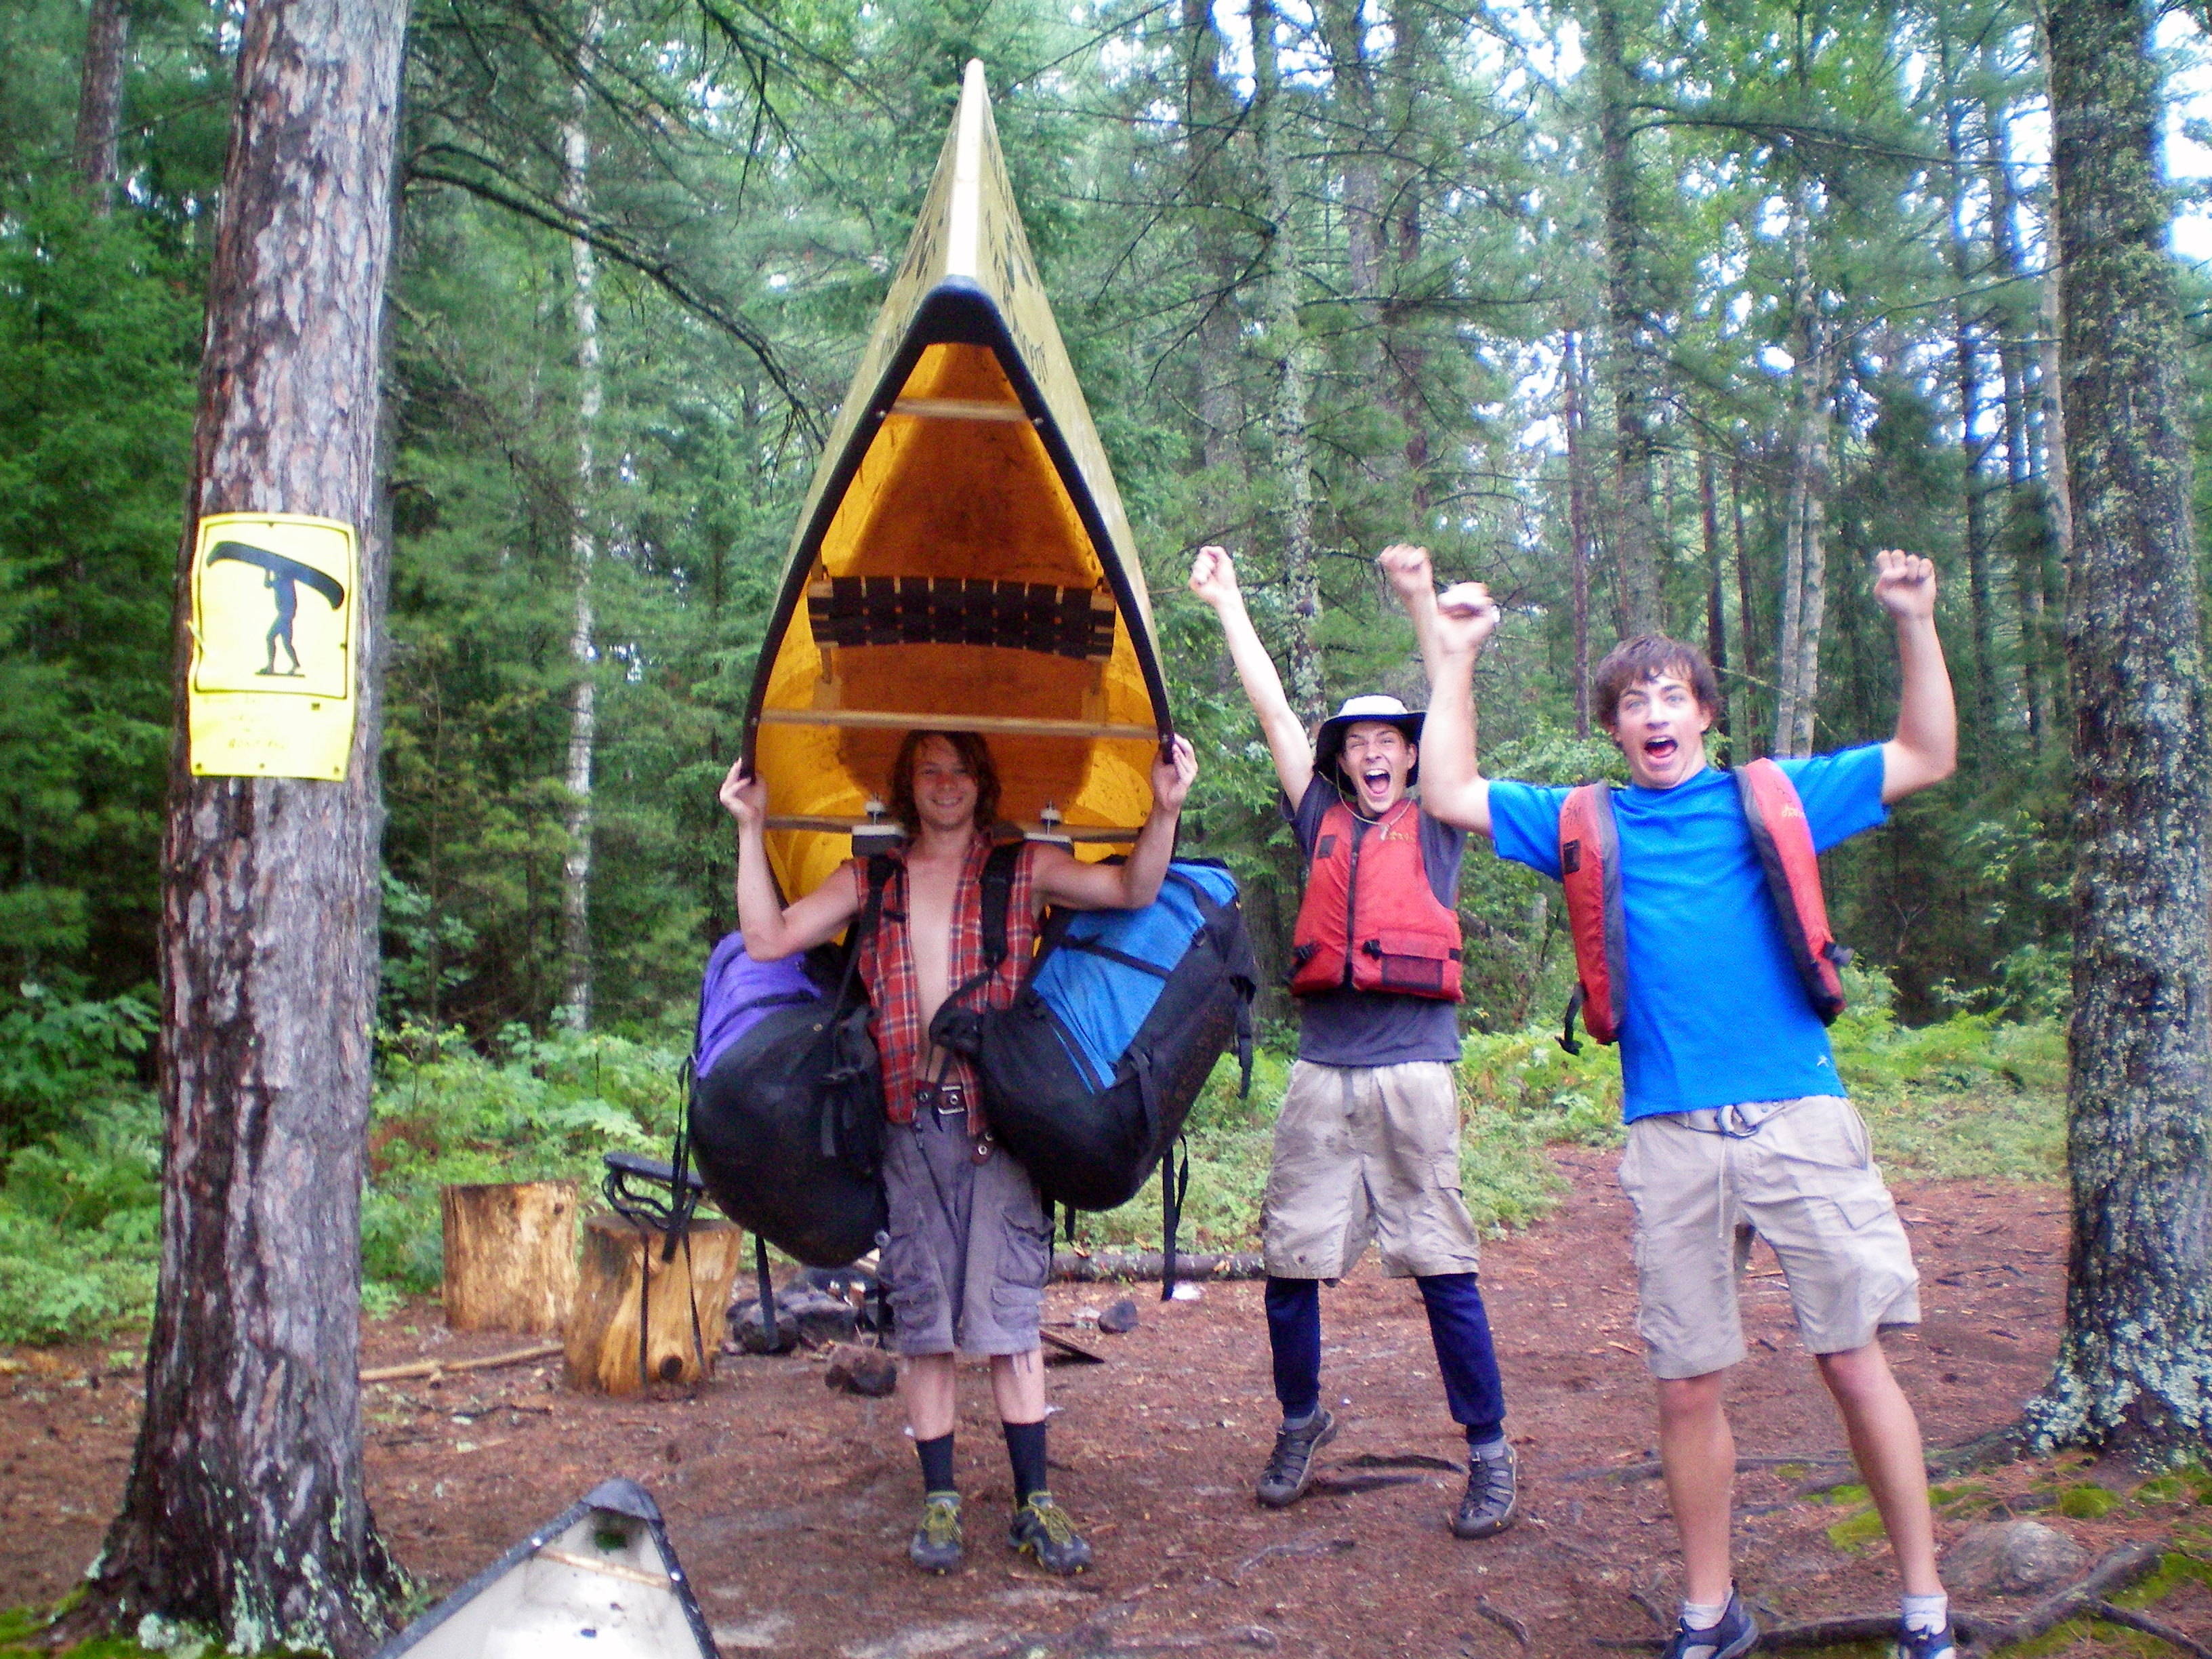 High Adventure Canoe Trip 2 Gear And Clothing